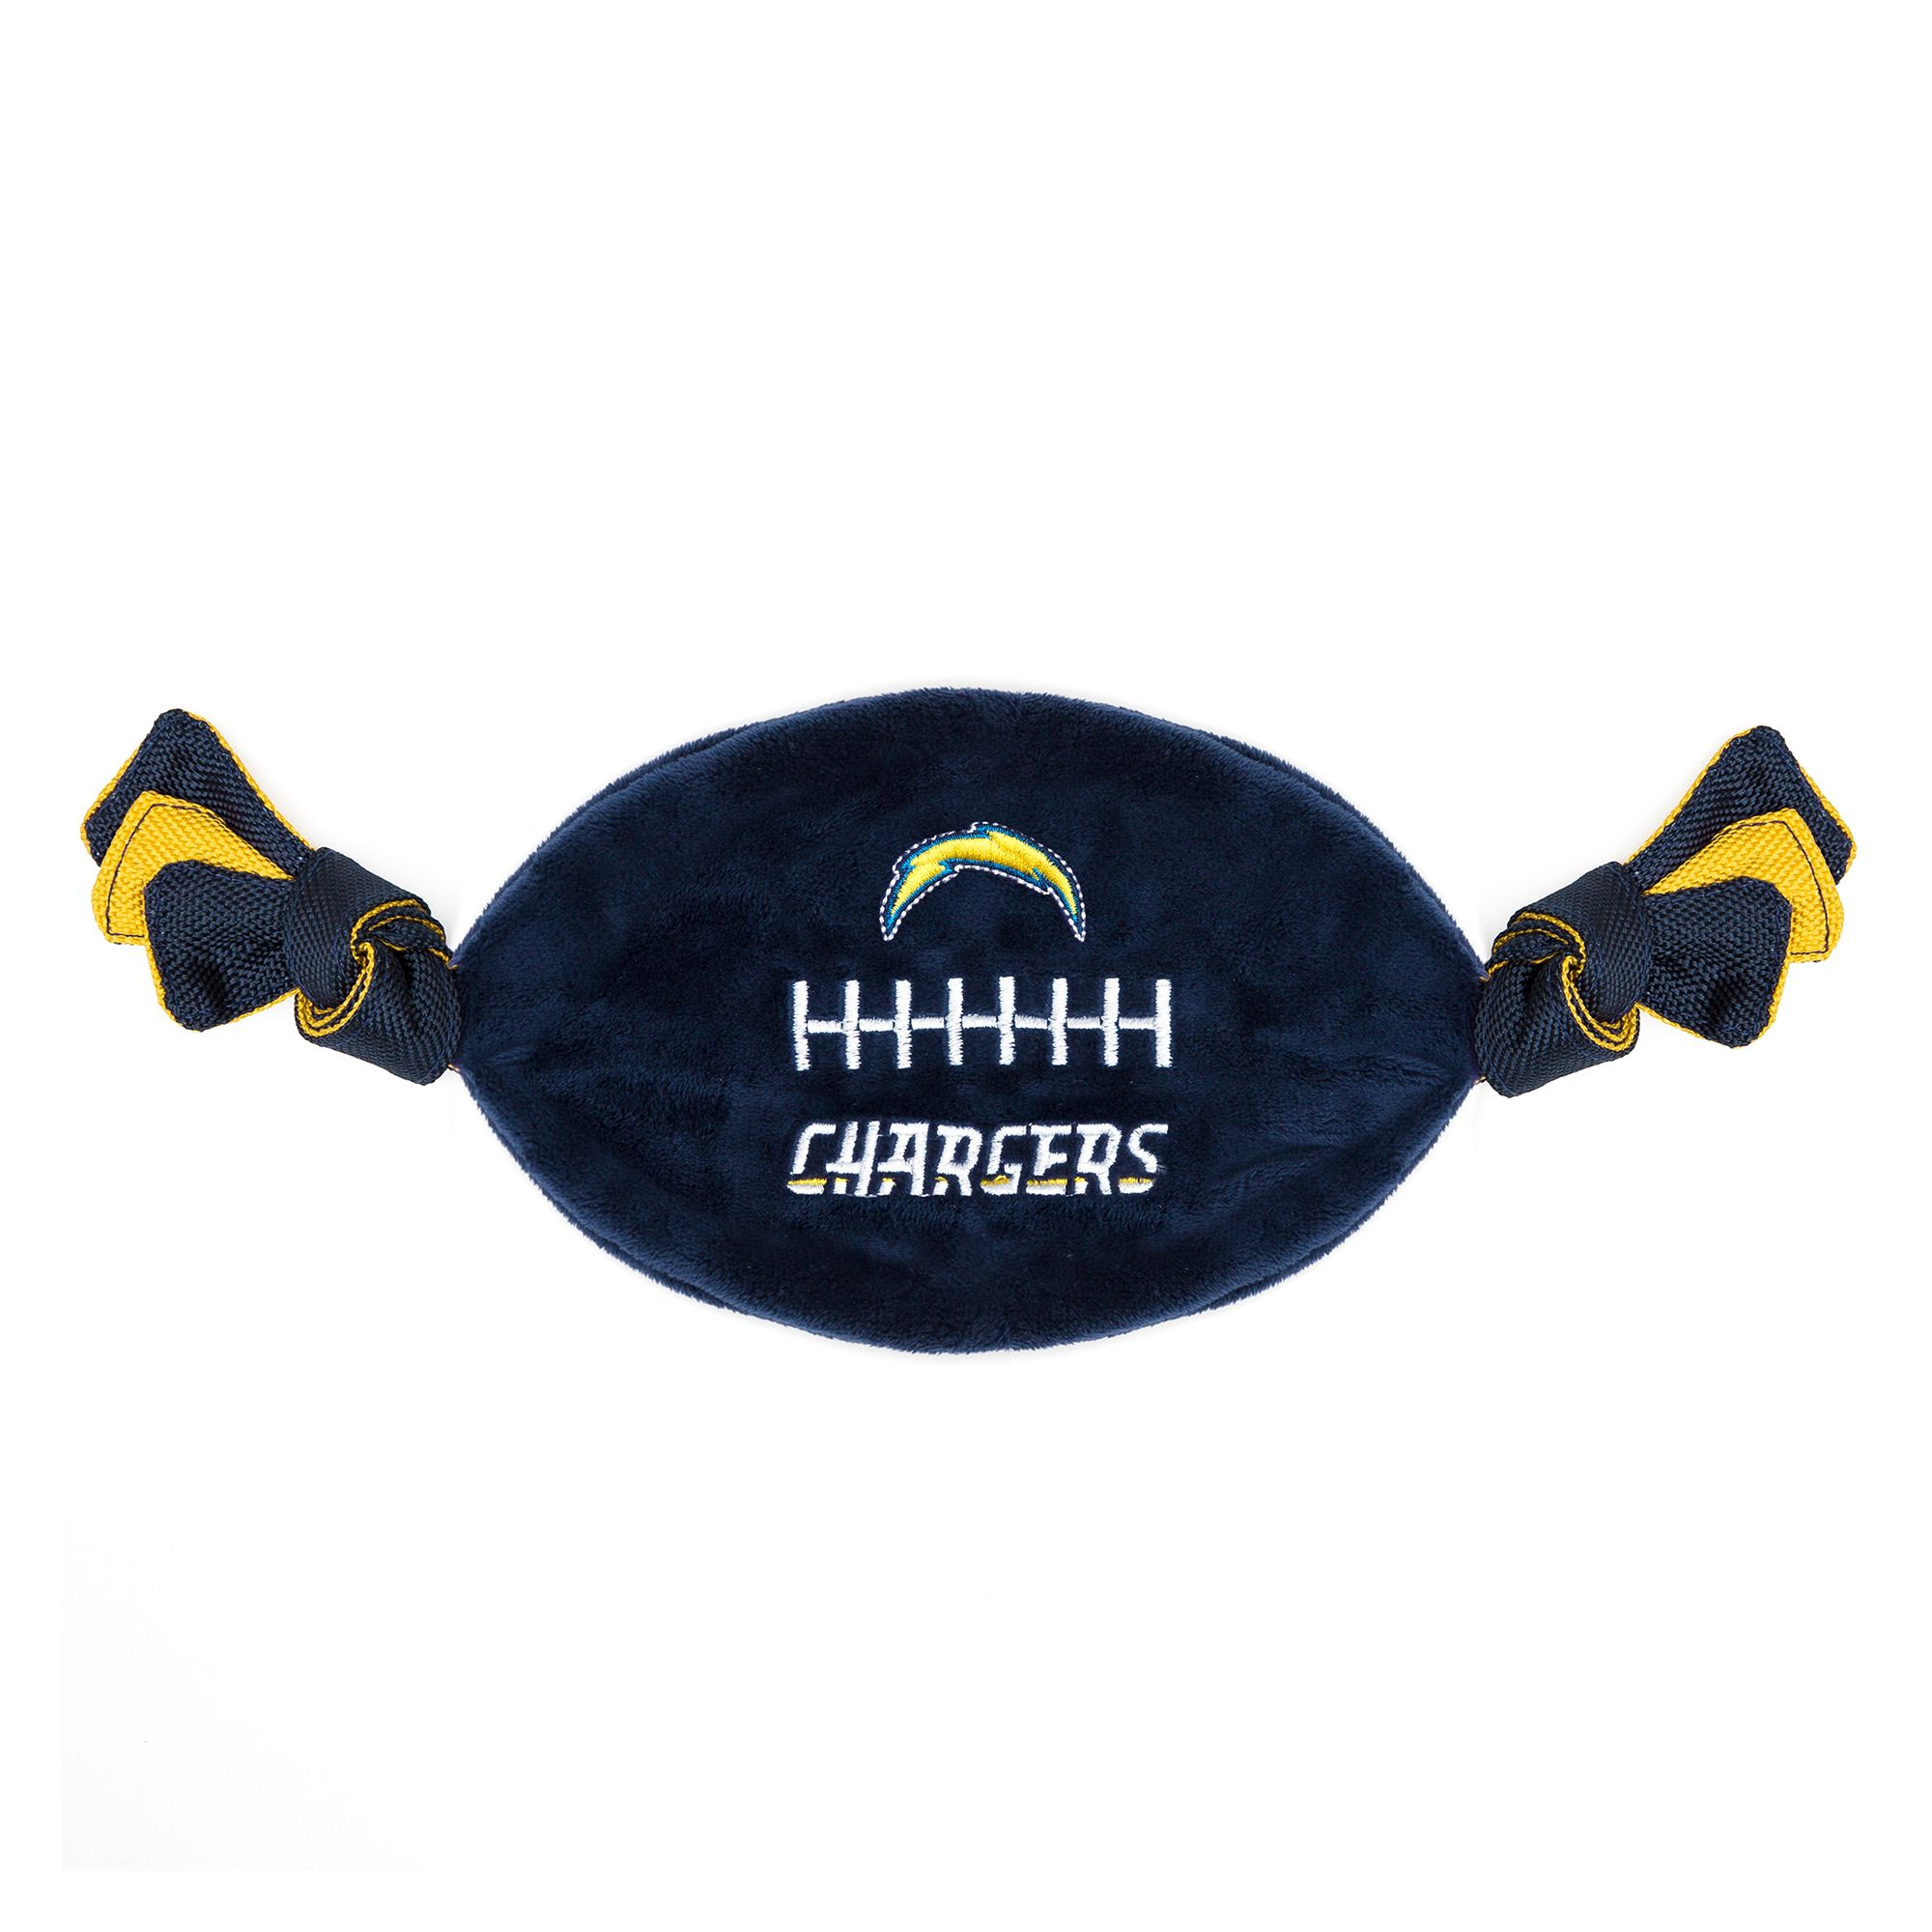 San Diego Chargers NFL Flattie Crinkle Football Toy, Pets First 5259768